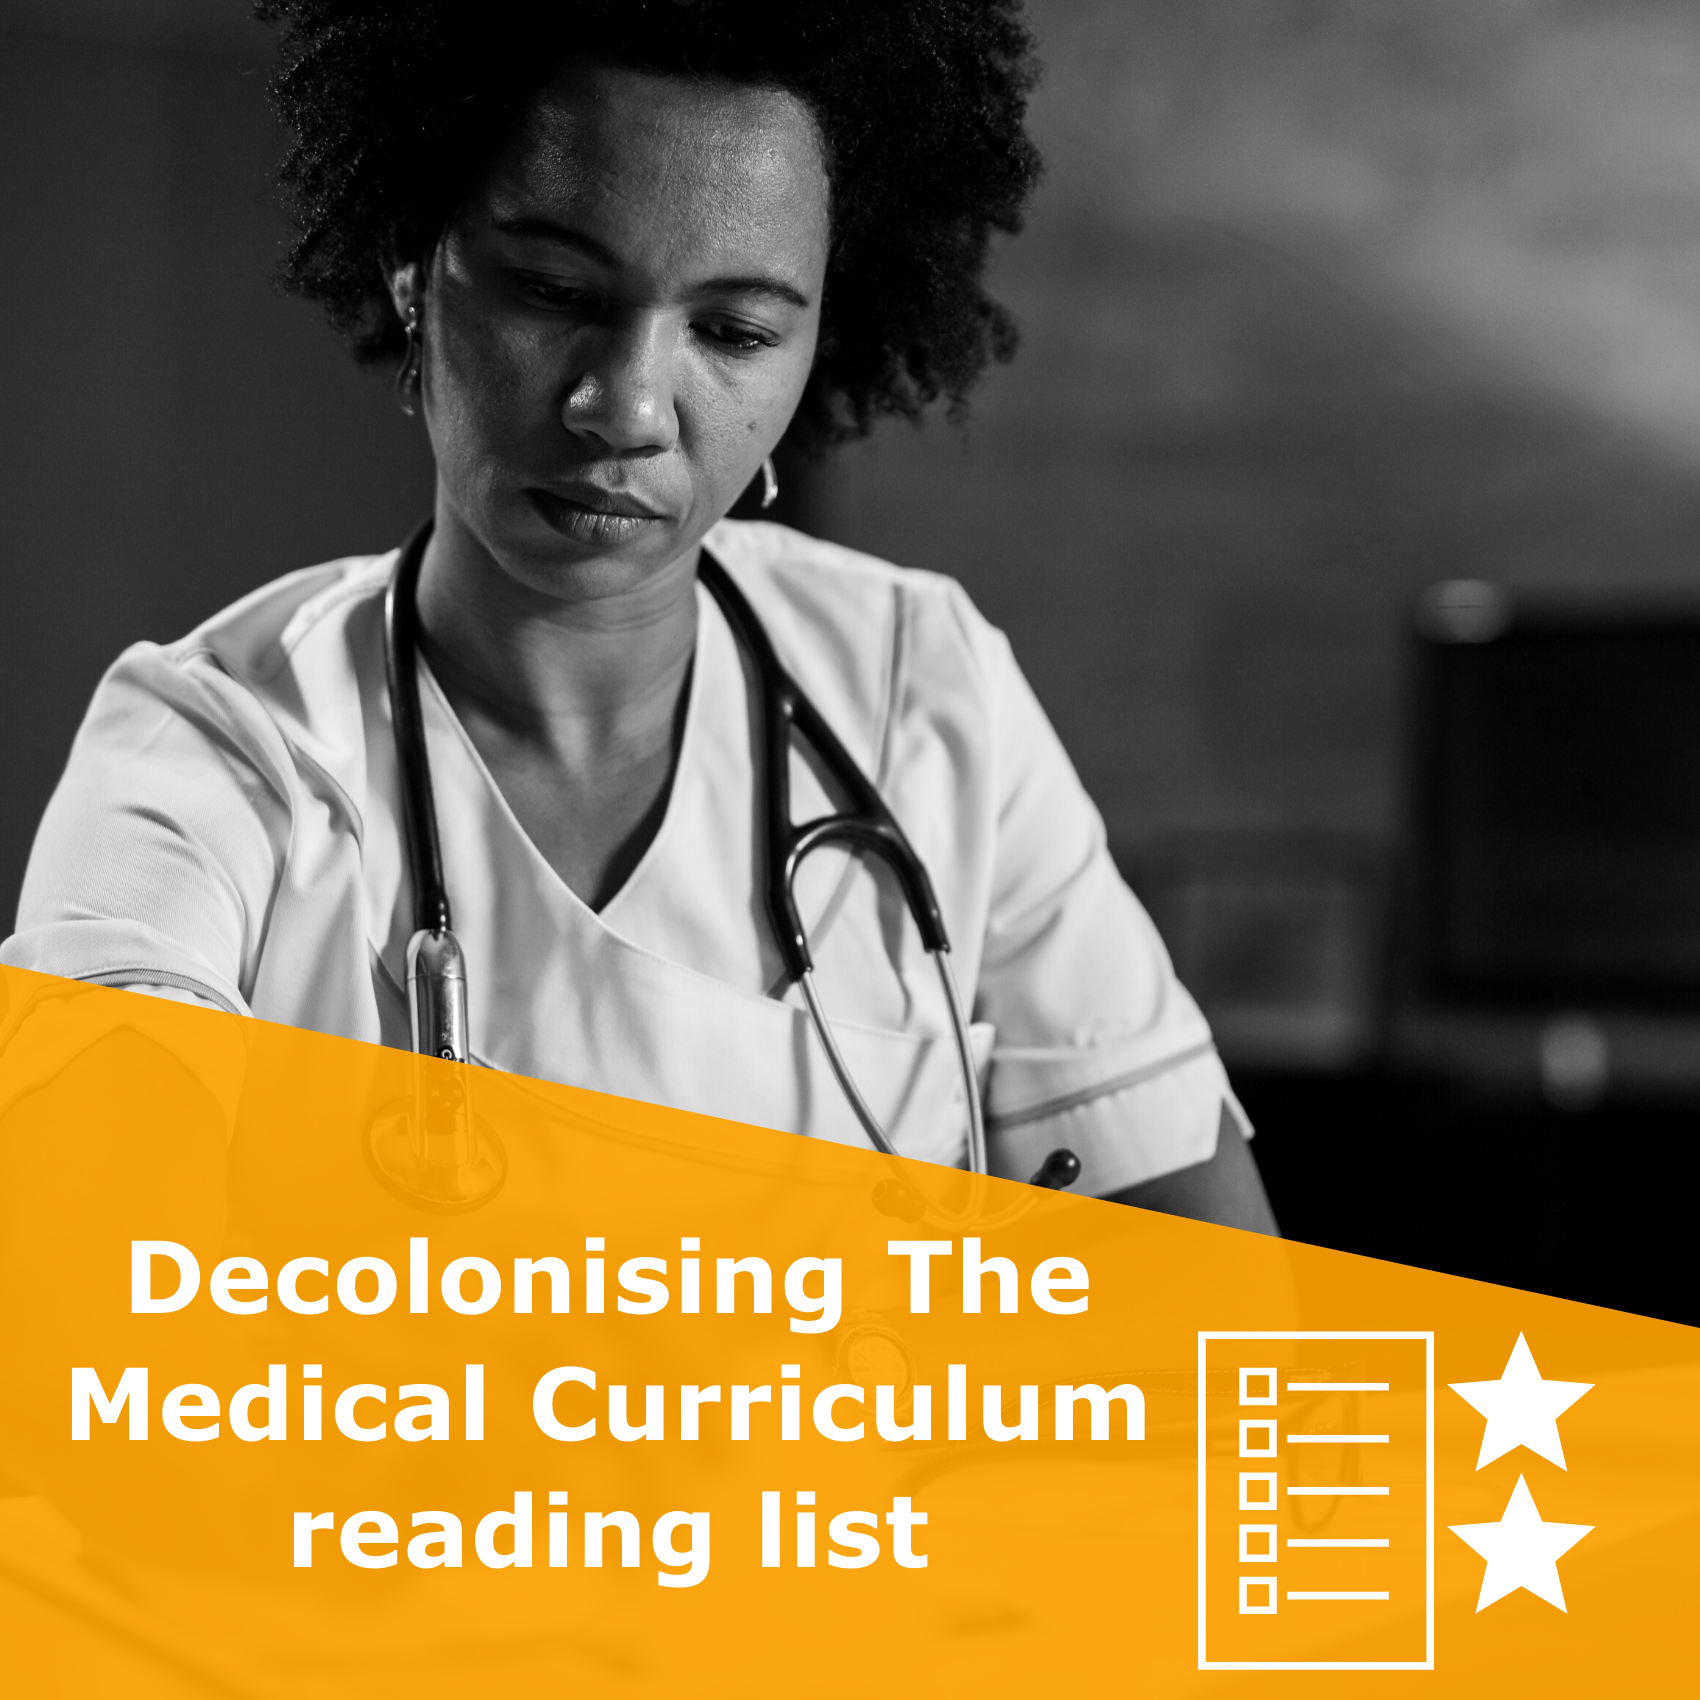 Title 'Decolonising The Medical Curriculum reading list'. It is a reading list rated 2 stars.